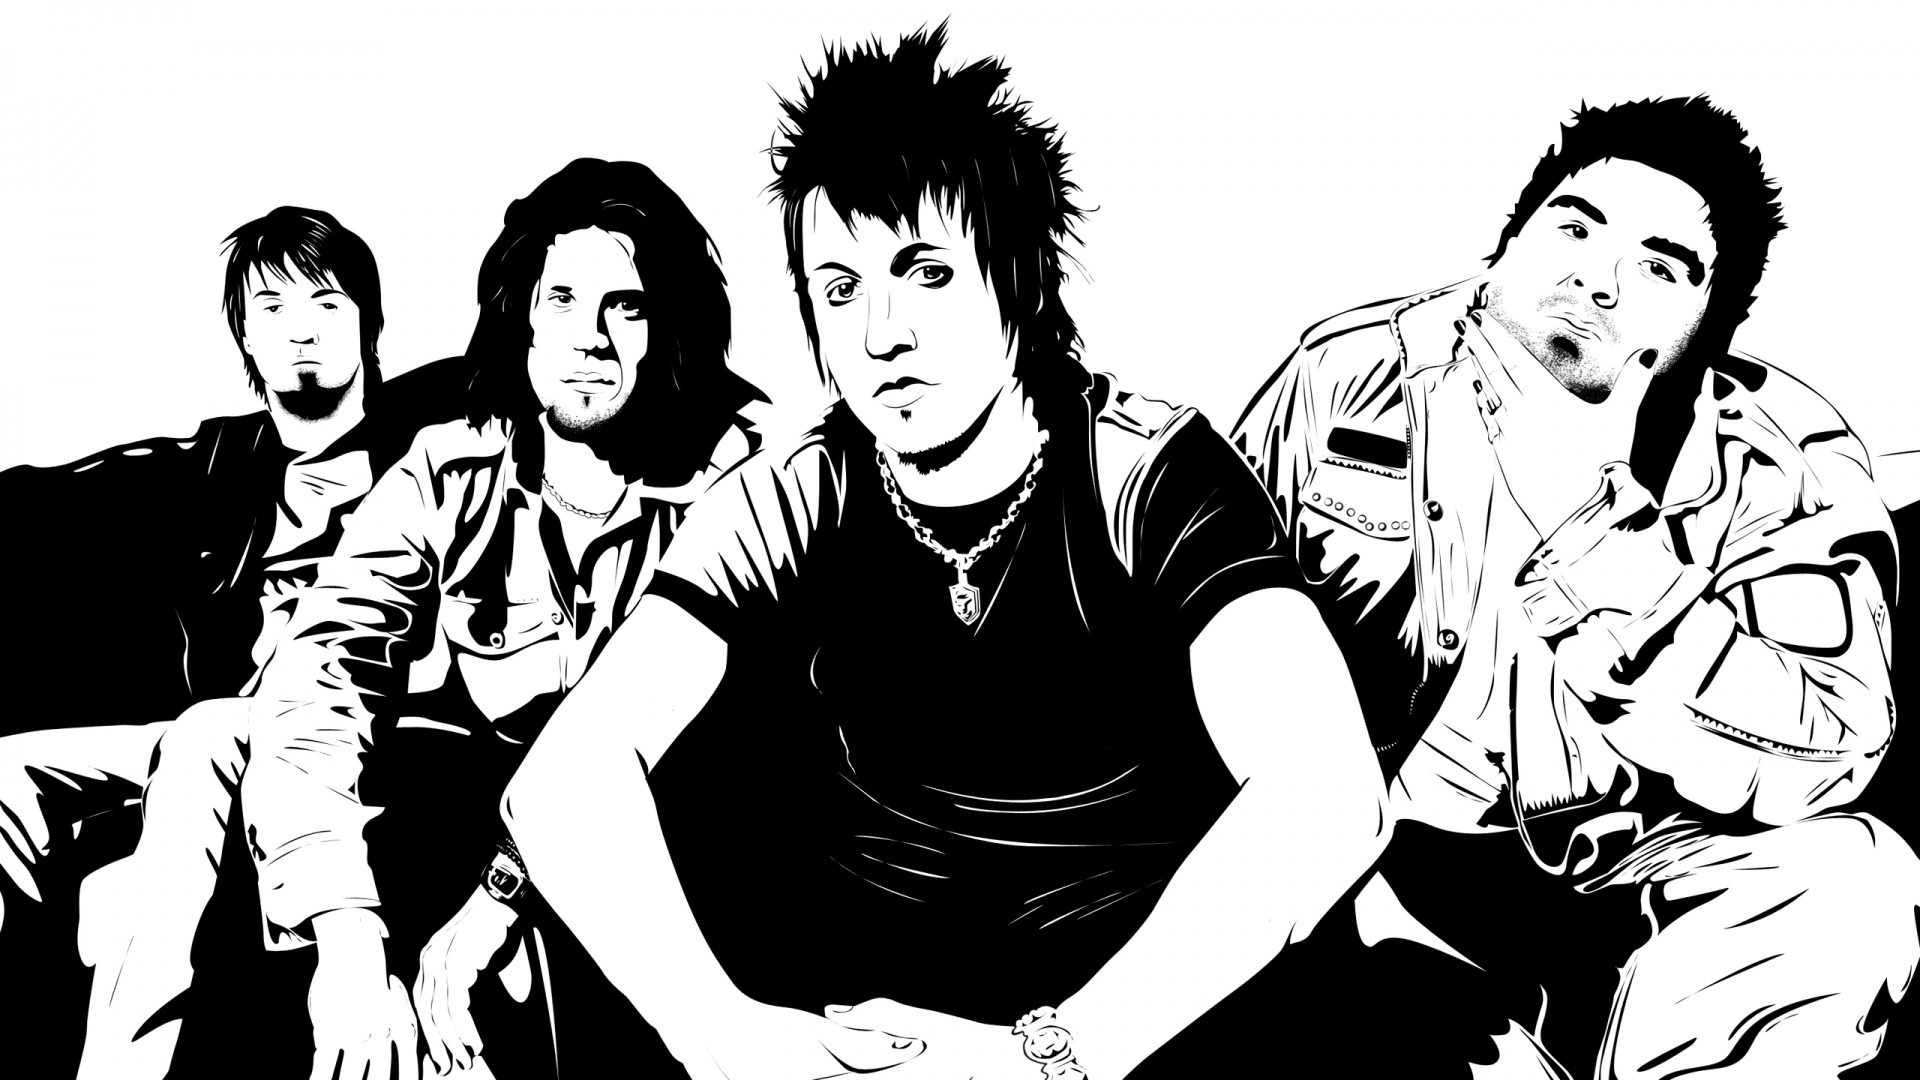 Res: 1920x1080, Get the latest papa roach, members, band news, pictures and videos and  learn all about papa roach, members, band from wallpapers4u.org, your  wallpaper news ...